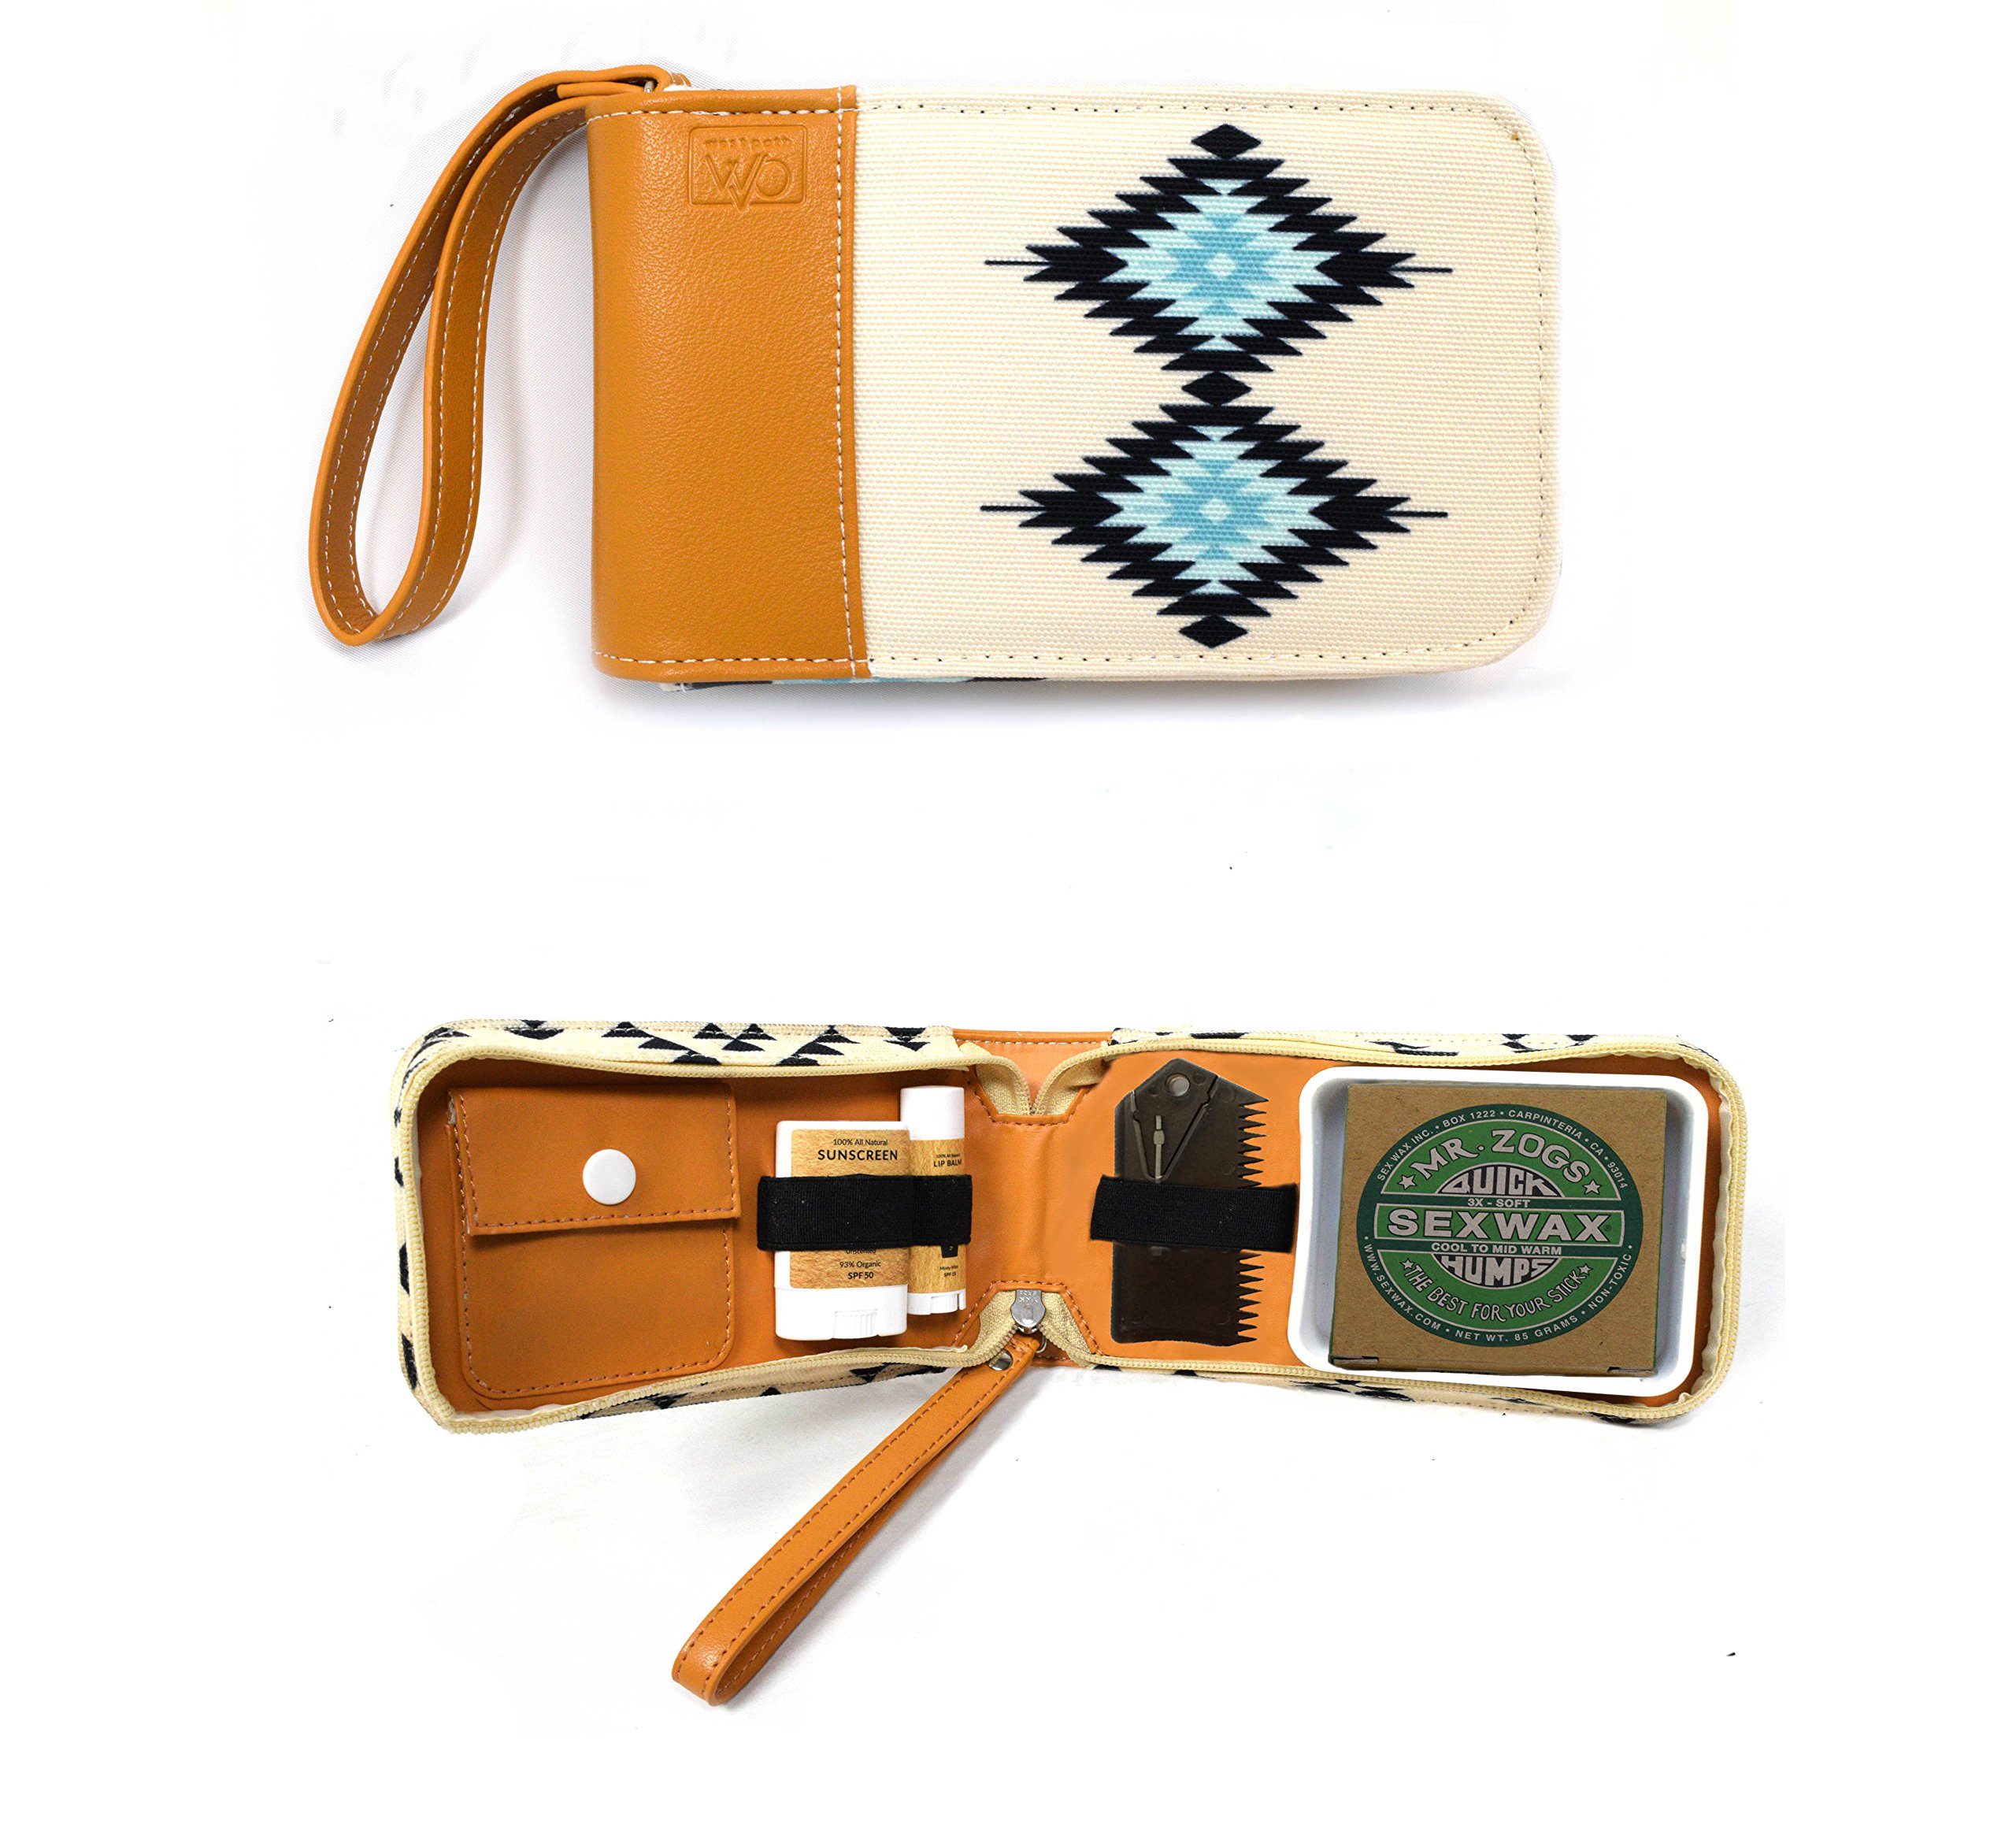 Surf Kit - A Great Surfer Gift & Surf Accessory that Holds your Sex Wax, Organic Sunscreen Face Stick, All Natural Lip Balm, Wax Scraper, and More! All in a Stylish Navajo Design Surf Wax Holder! by Open Road Goods